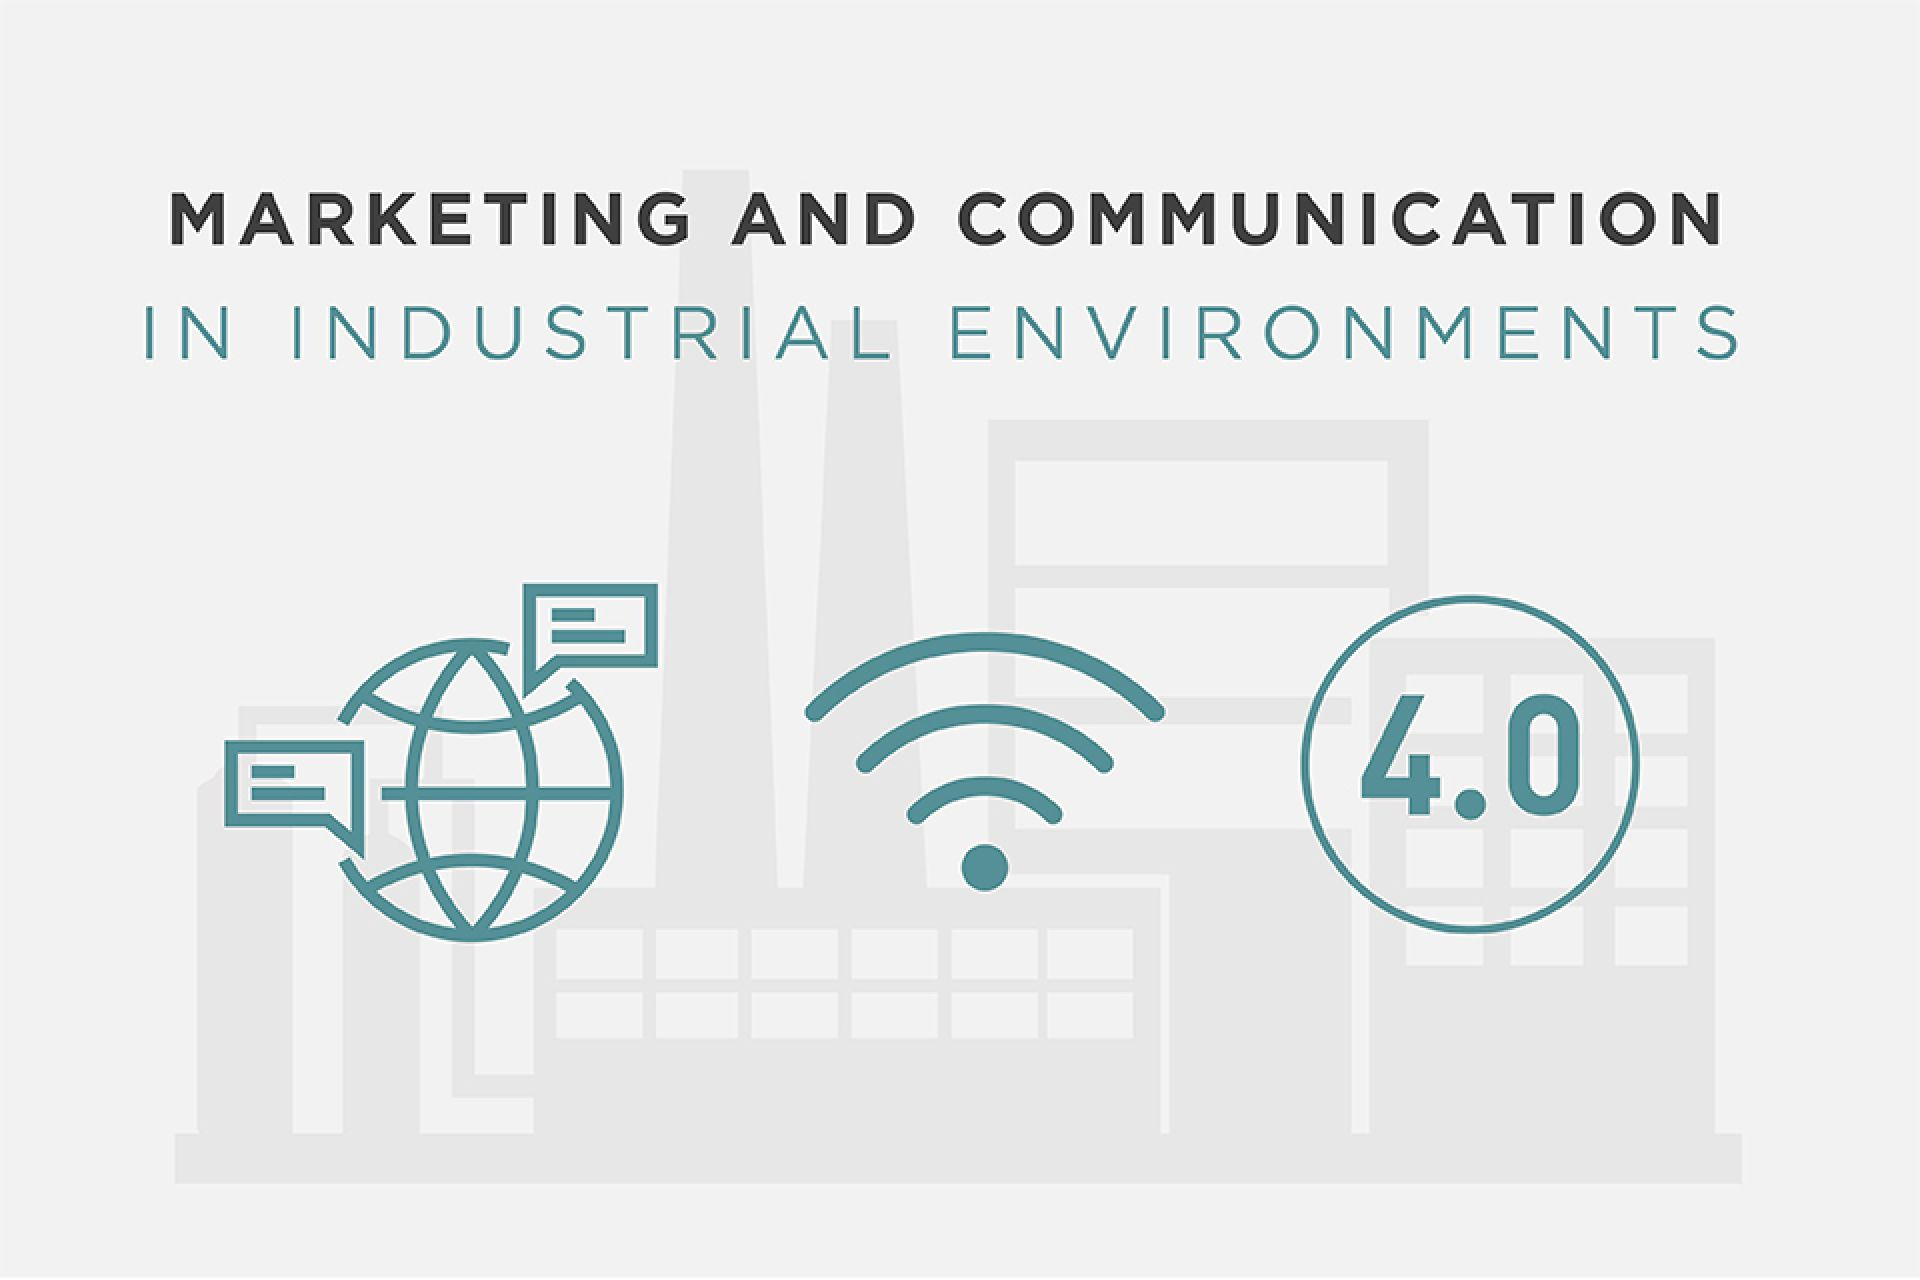 Why bet on marketing and communication in industrial environments?